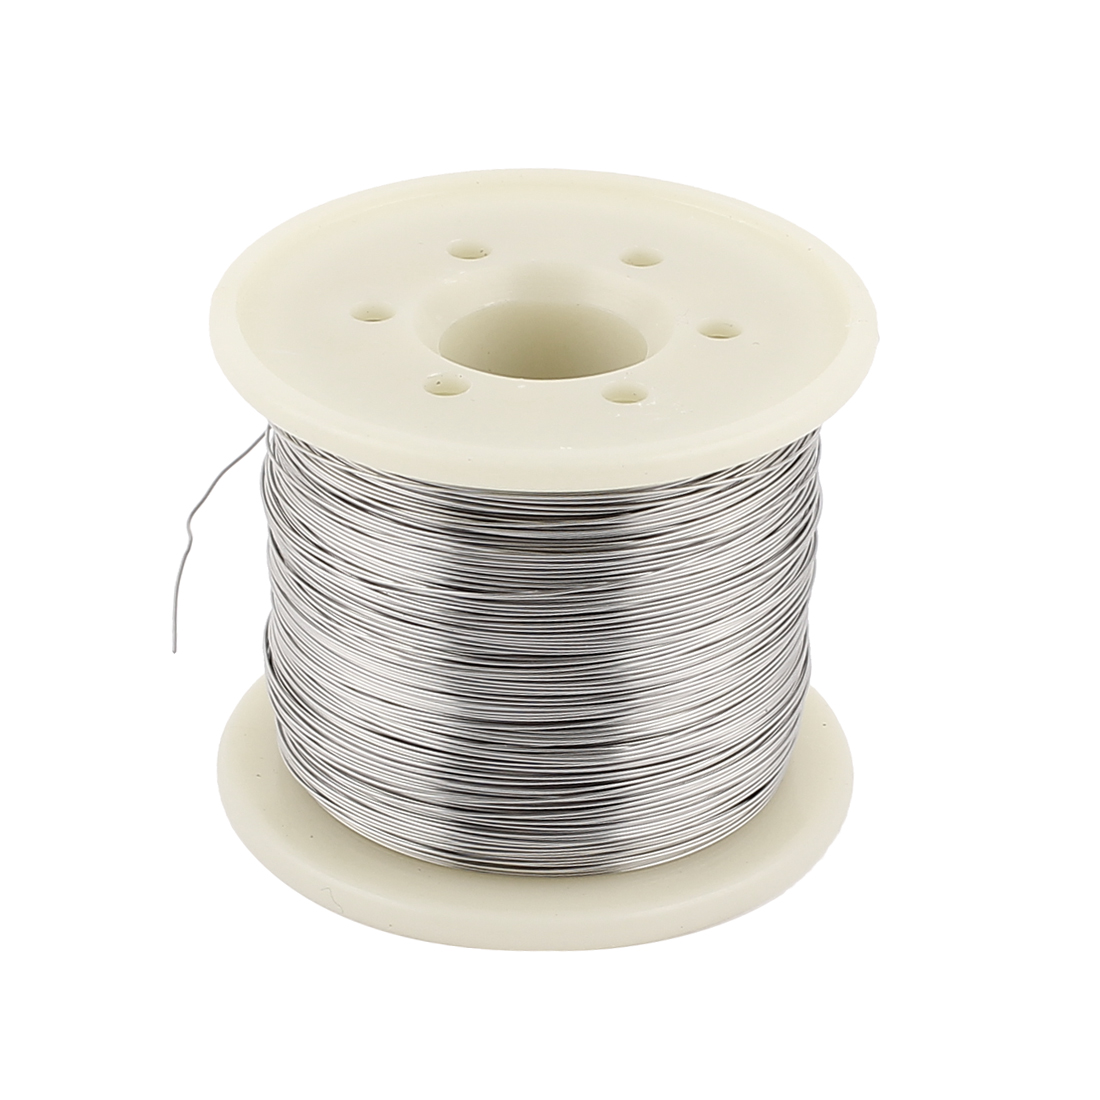 Nichrome 80 0.35mm 27 Gauge AWG 100M Roll 11.74 Ohms/m Heater Wire